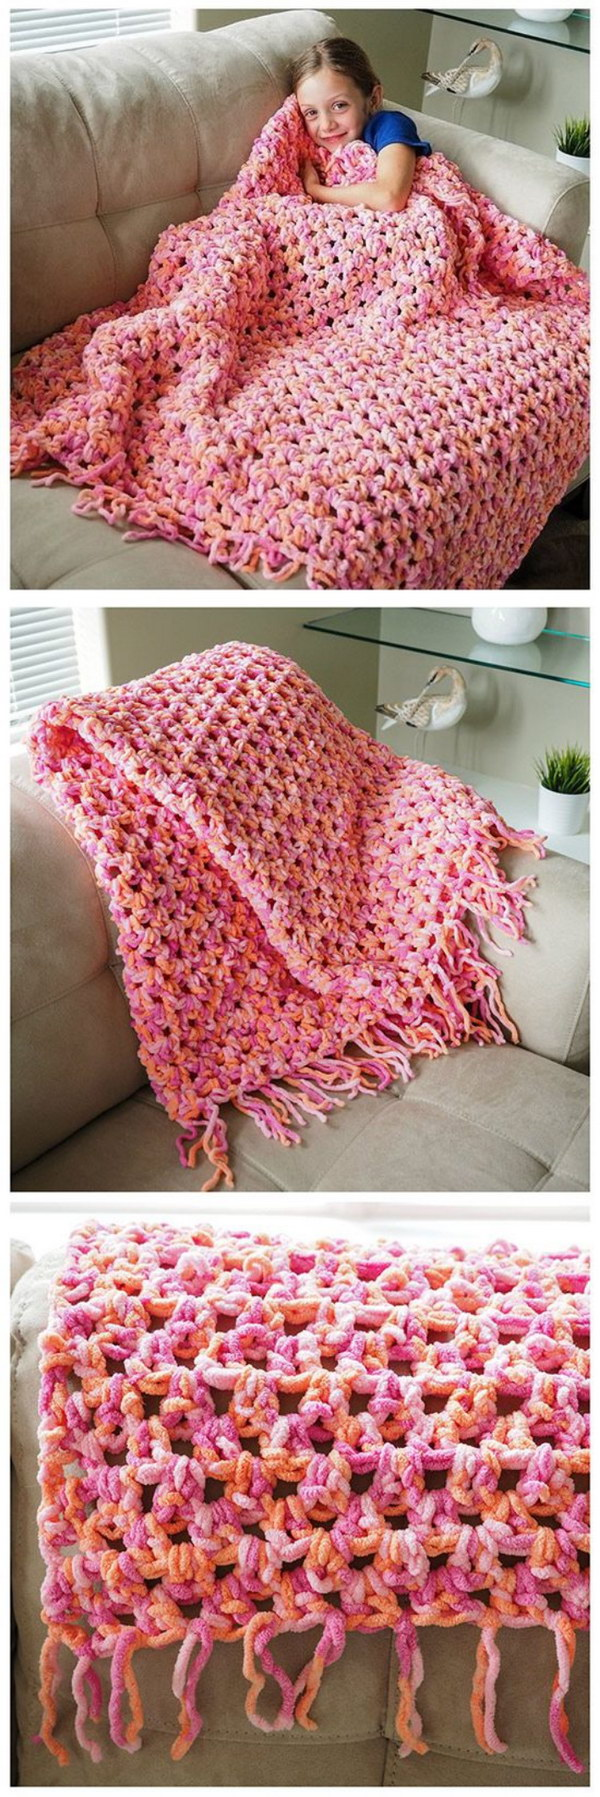 Sofa Blanket Beginners Crochet Pattern.